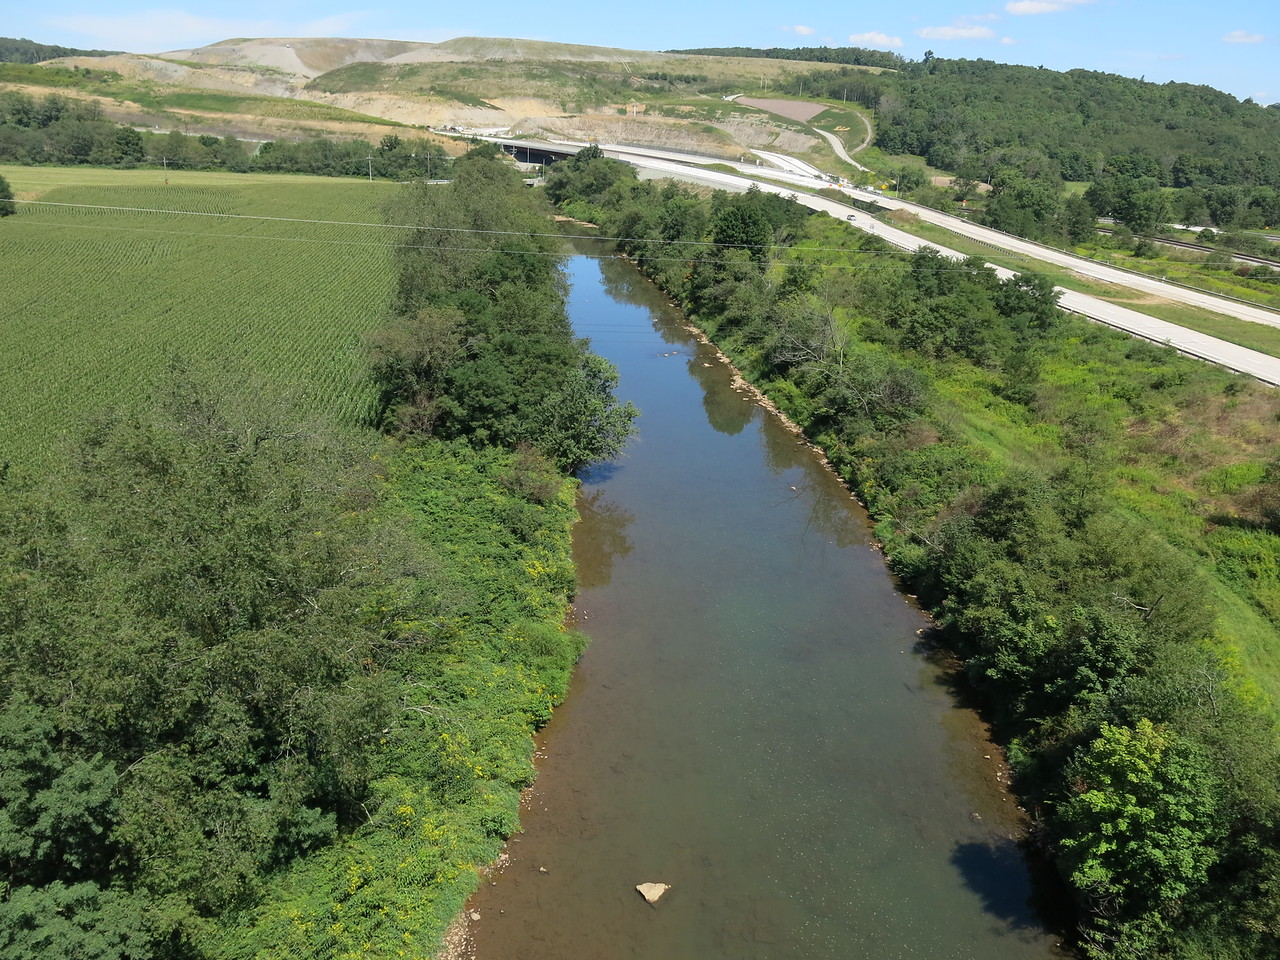 Downstream view of Casselman River and US Highway 219